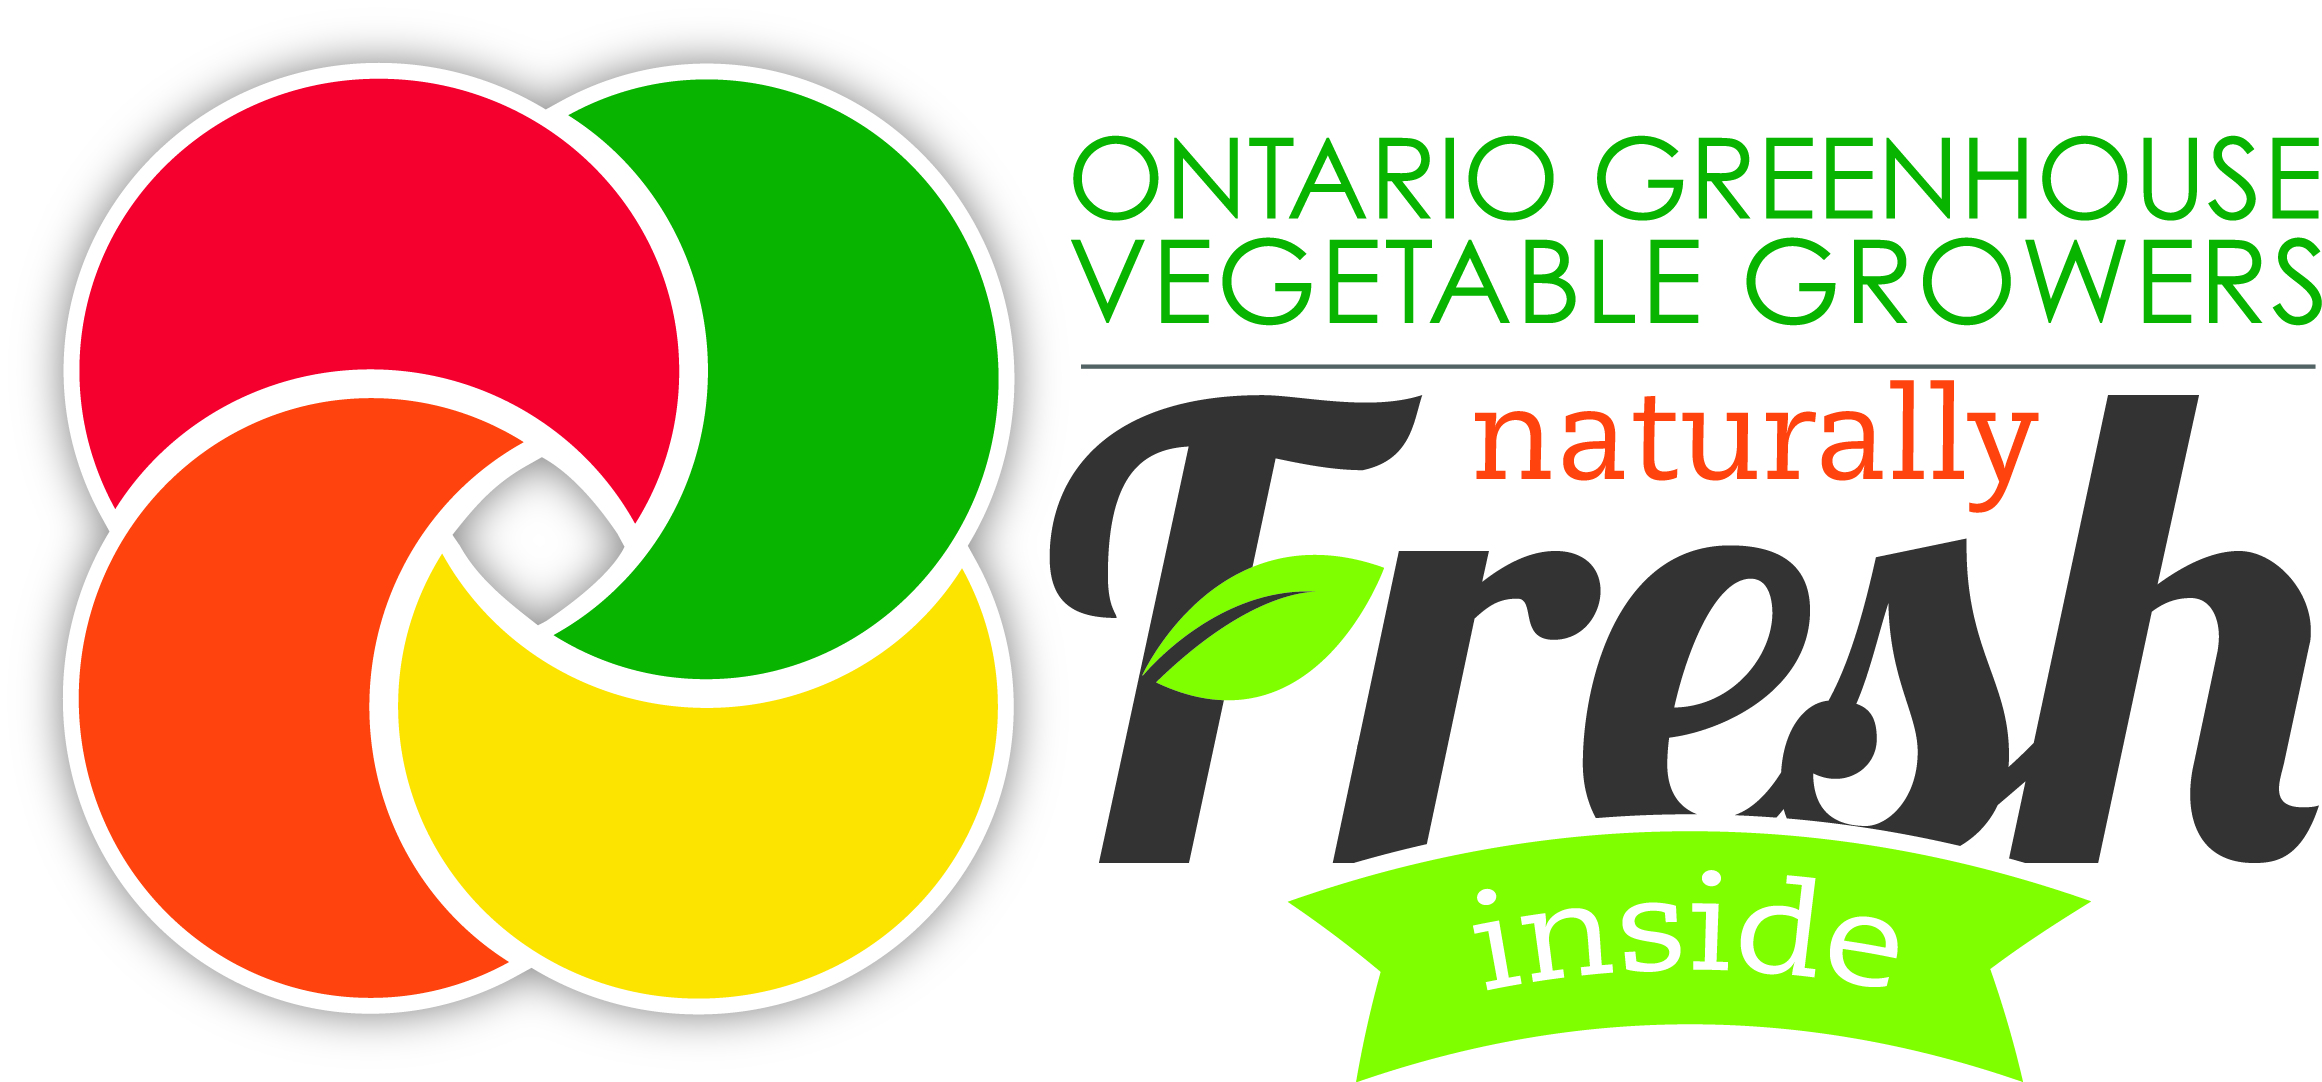 ONTARIO GREENHOUSE VEGETABLE GROWERS (OGVG)